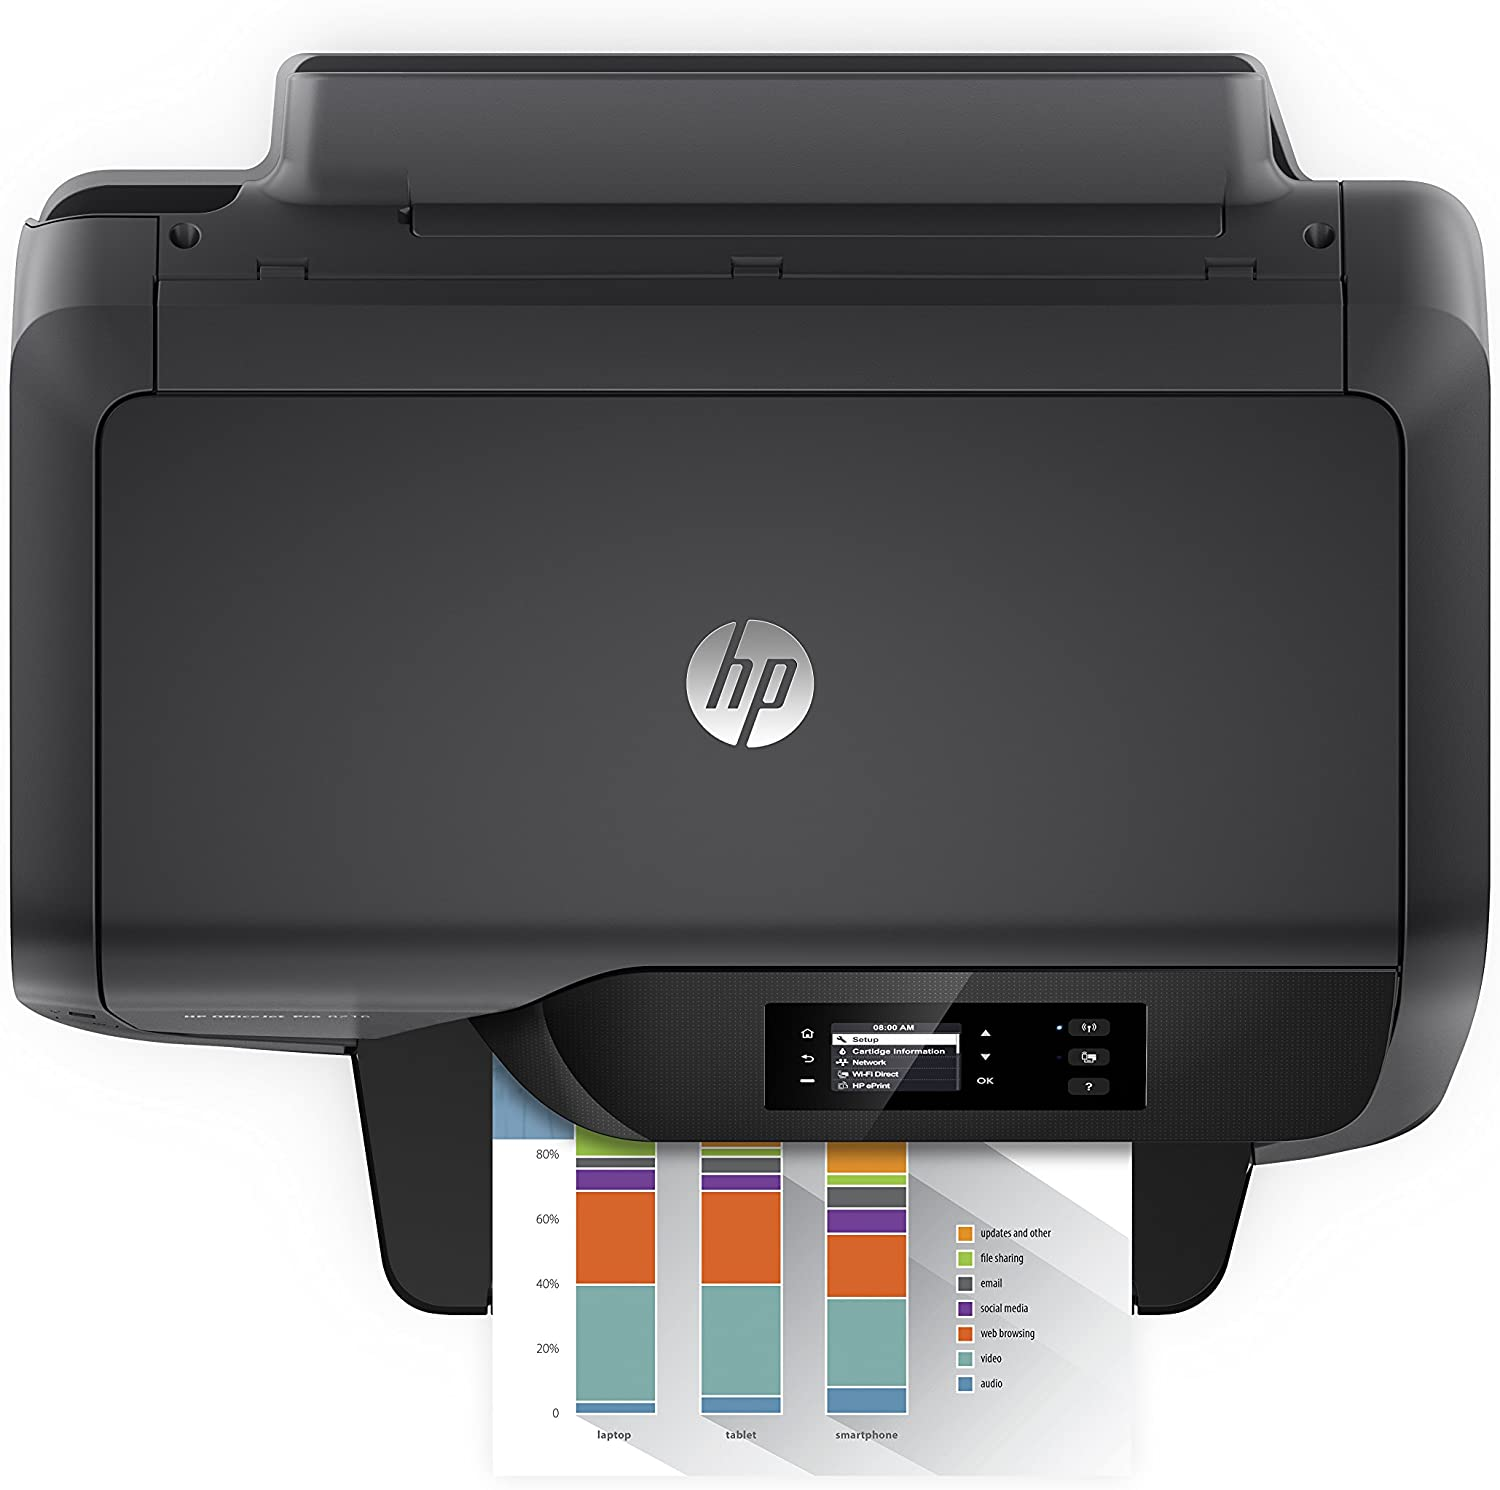 HP OfficeJet Pro 8216 Wireless Professional-Quality Color Printer with Mobile Printing, Instant Ink ready